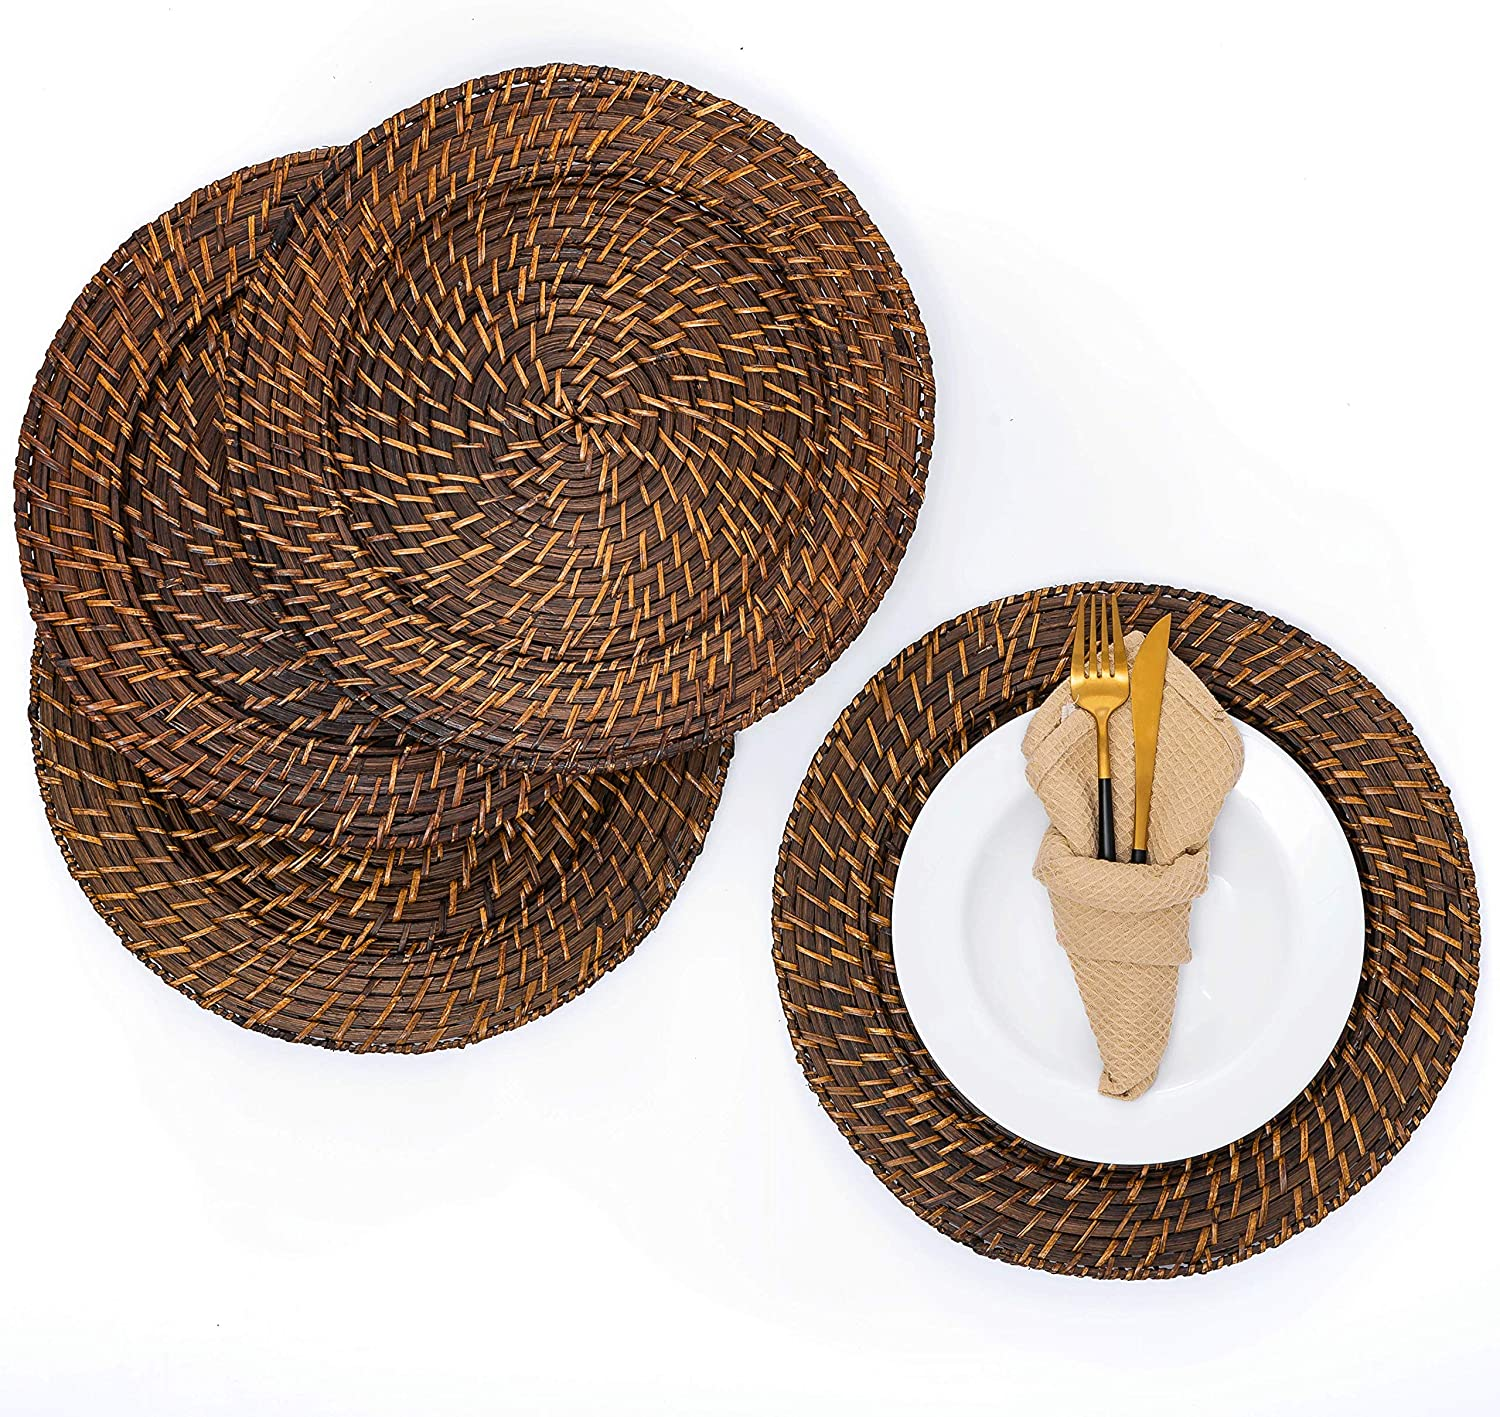 Artera Wicker Rattan Charger Plates - Set Wo Kansas City Mall Round New color inch 13 of 4